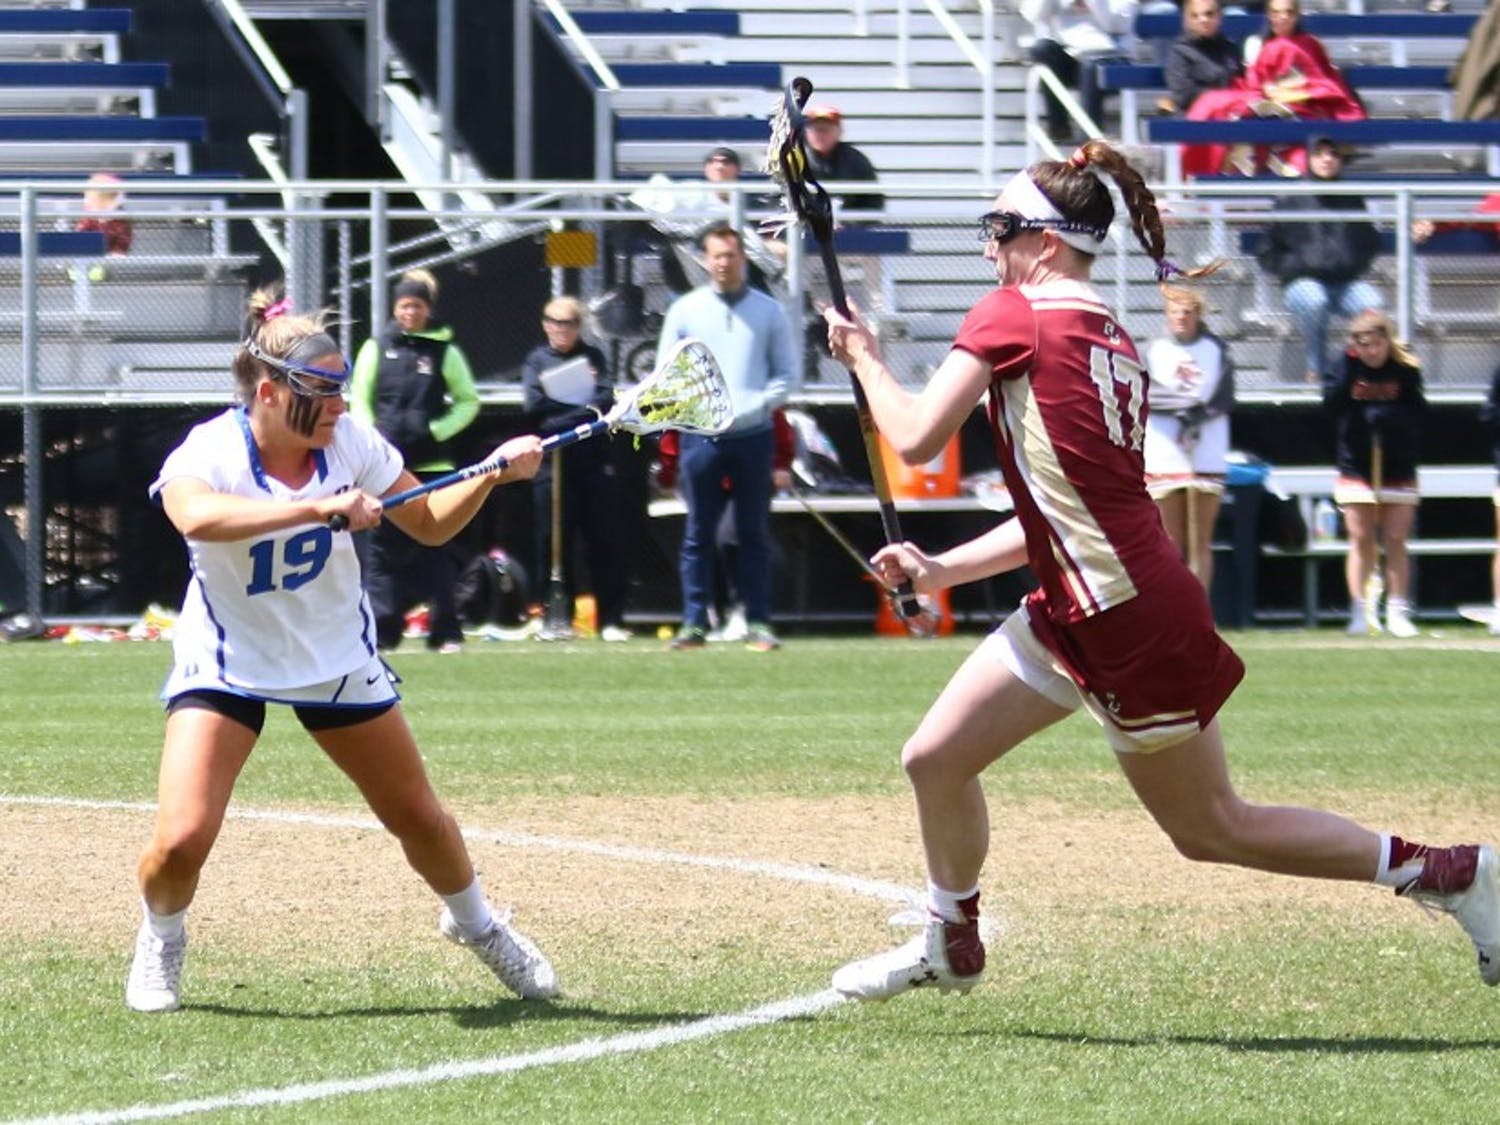 Senior Claire Scarrone and the Blue Devils will have to find a way to slow down North Carolina's relentless offense Saturday in Chapel Hill.